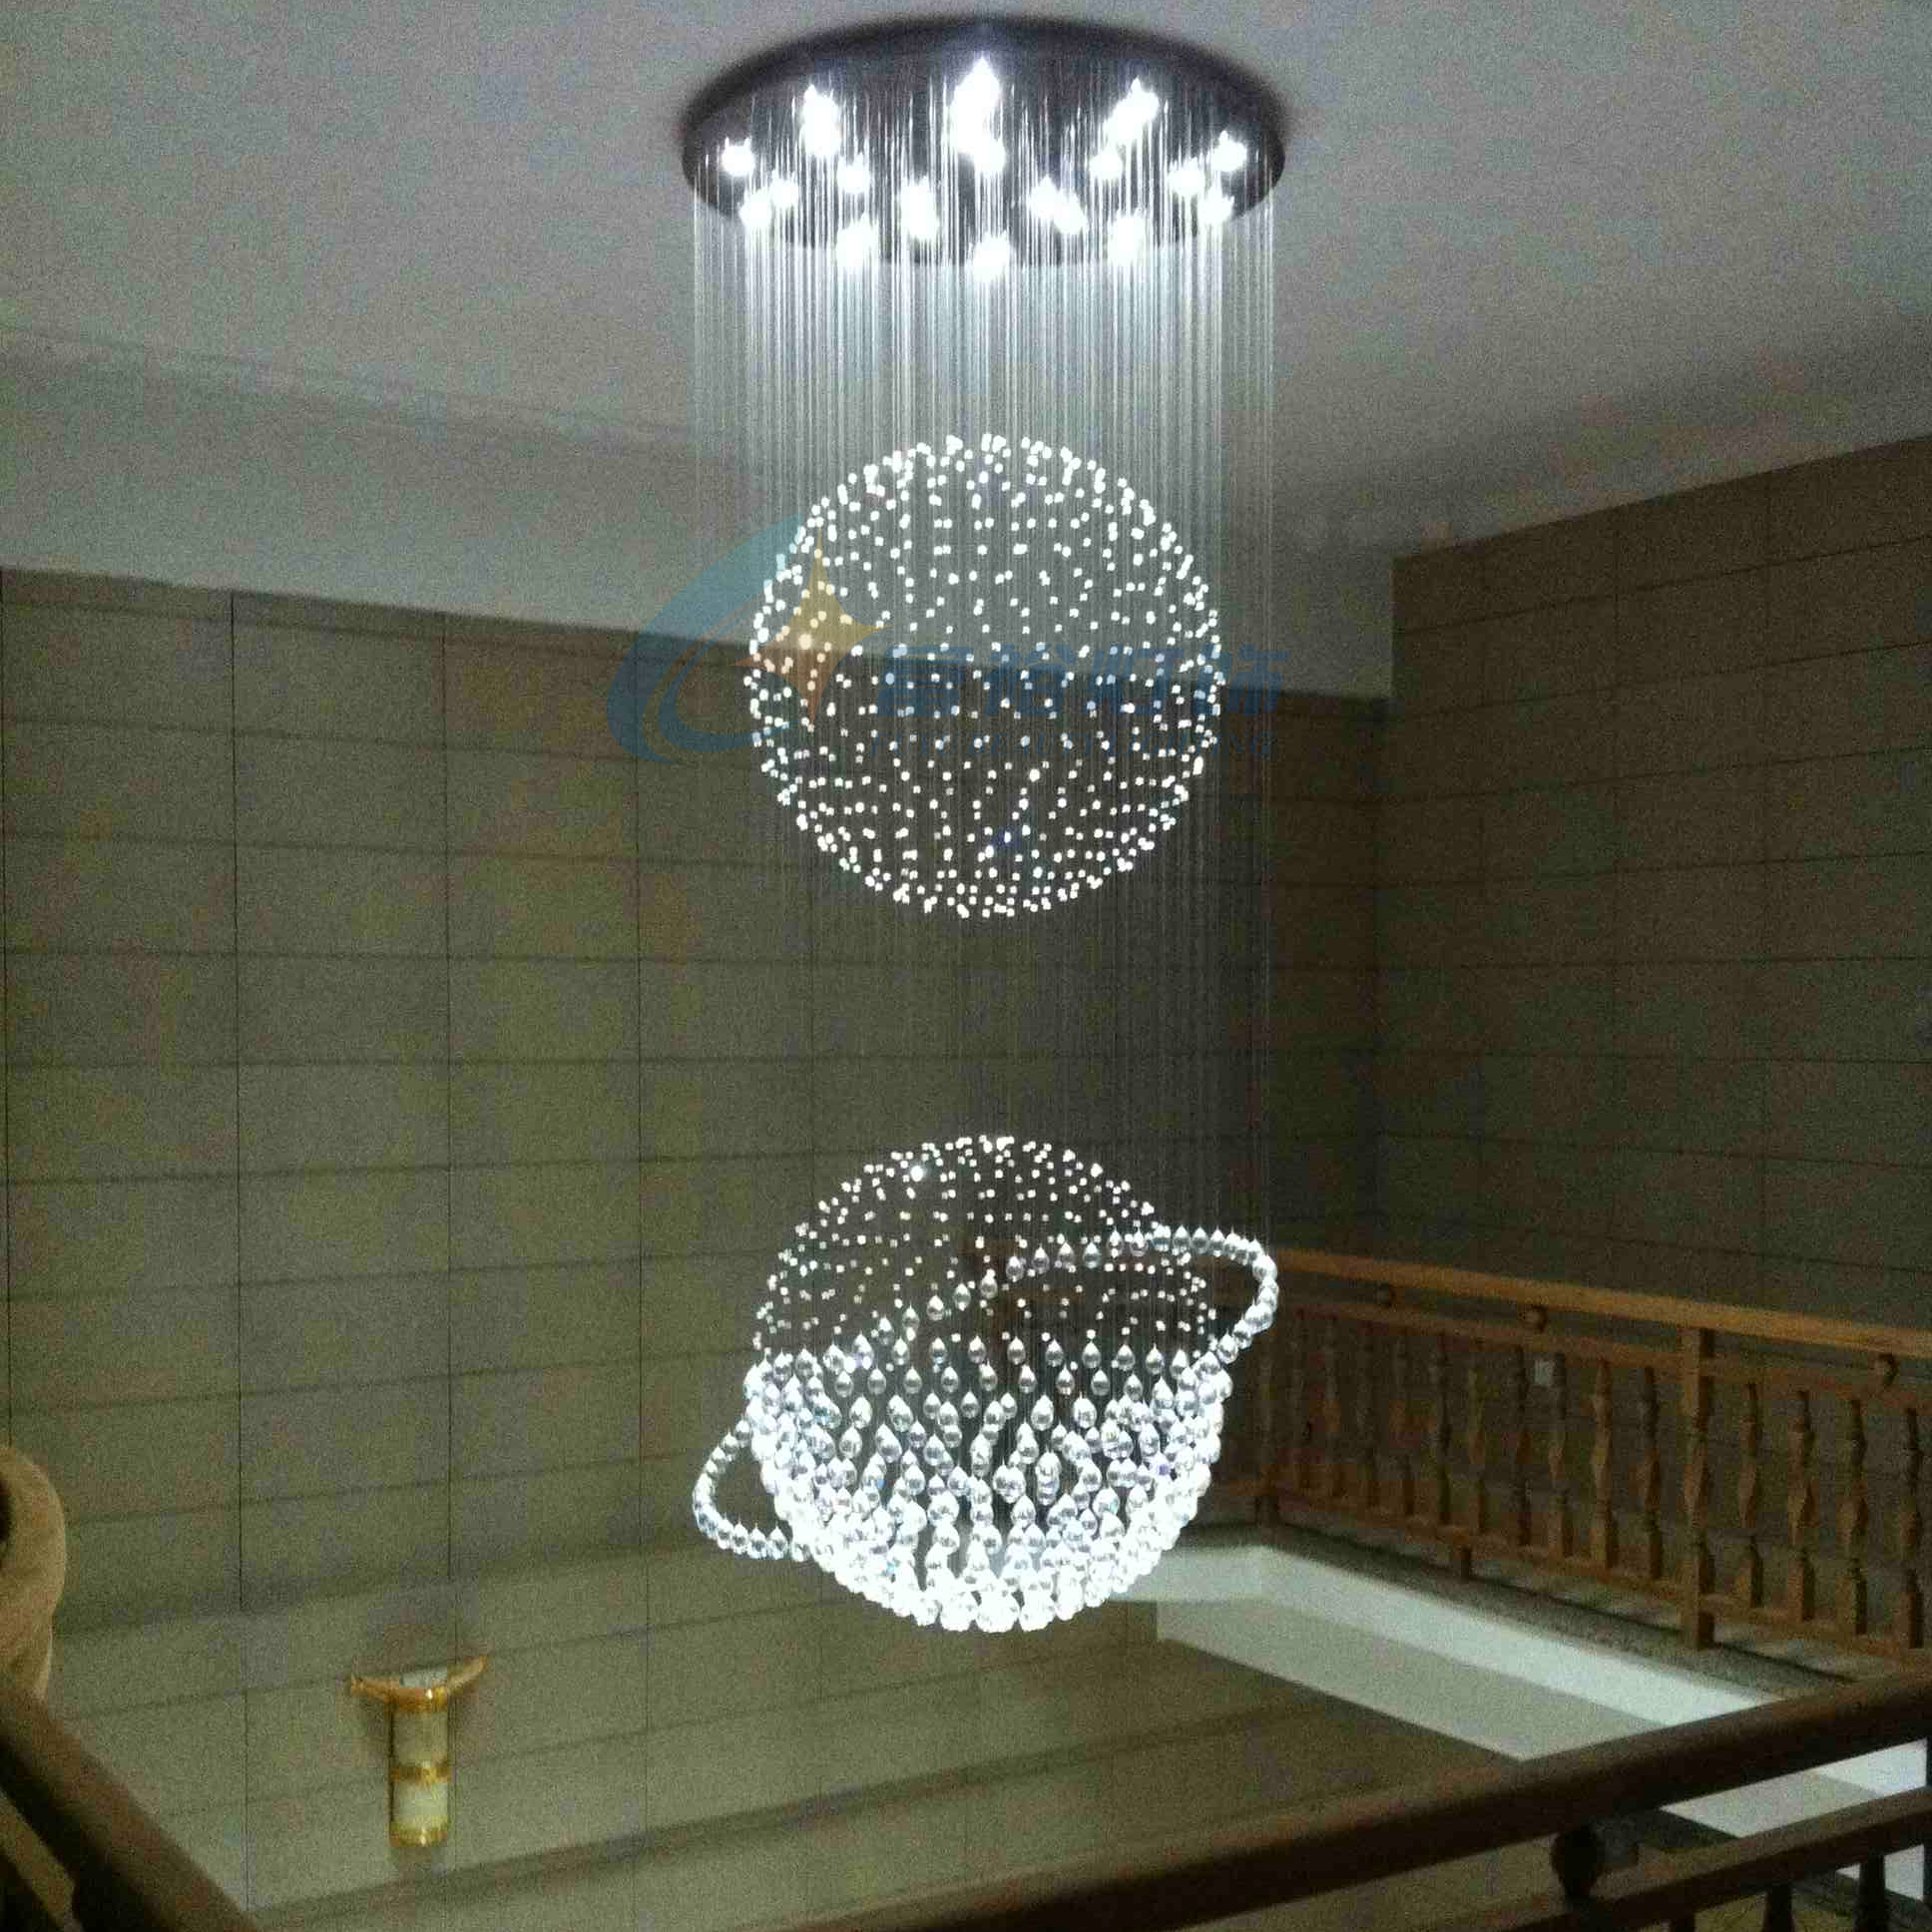 Crystal pendant light led restaurant lights modern brief lamps stair lamp large pendant light 8632 сплит система electrolux eacs 07hsl n3